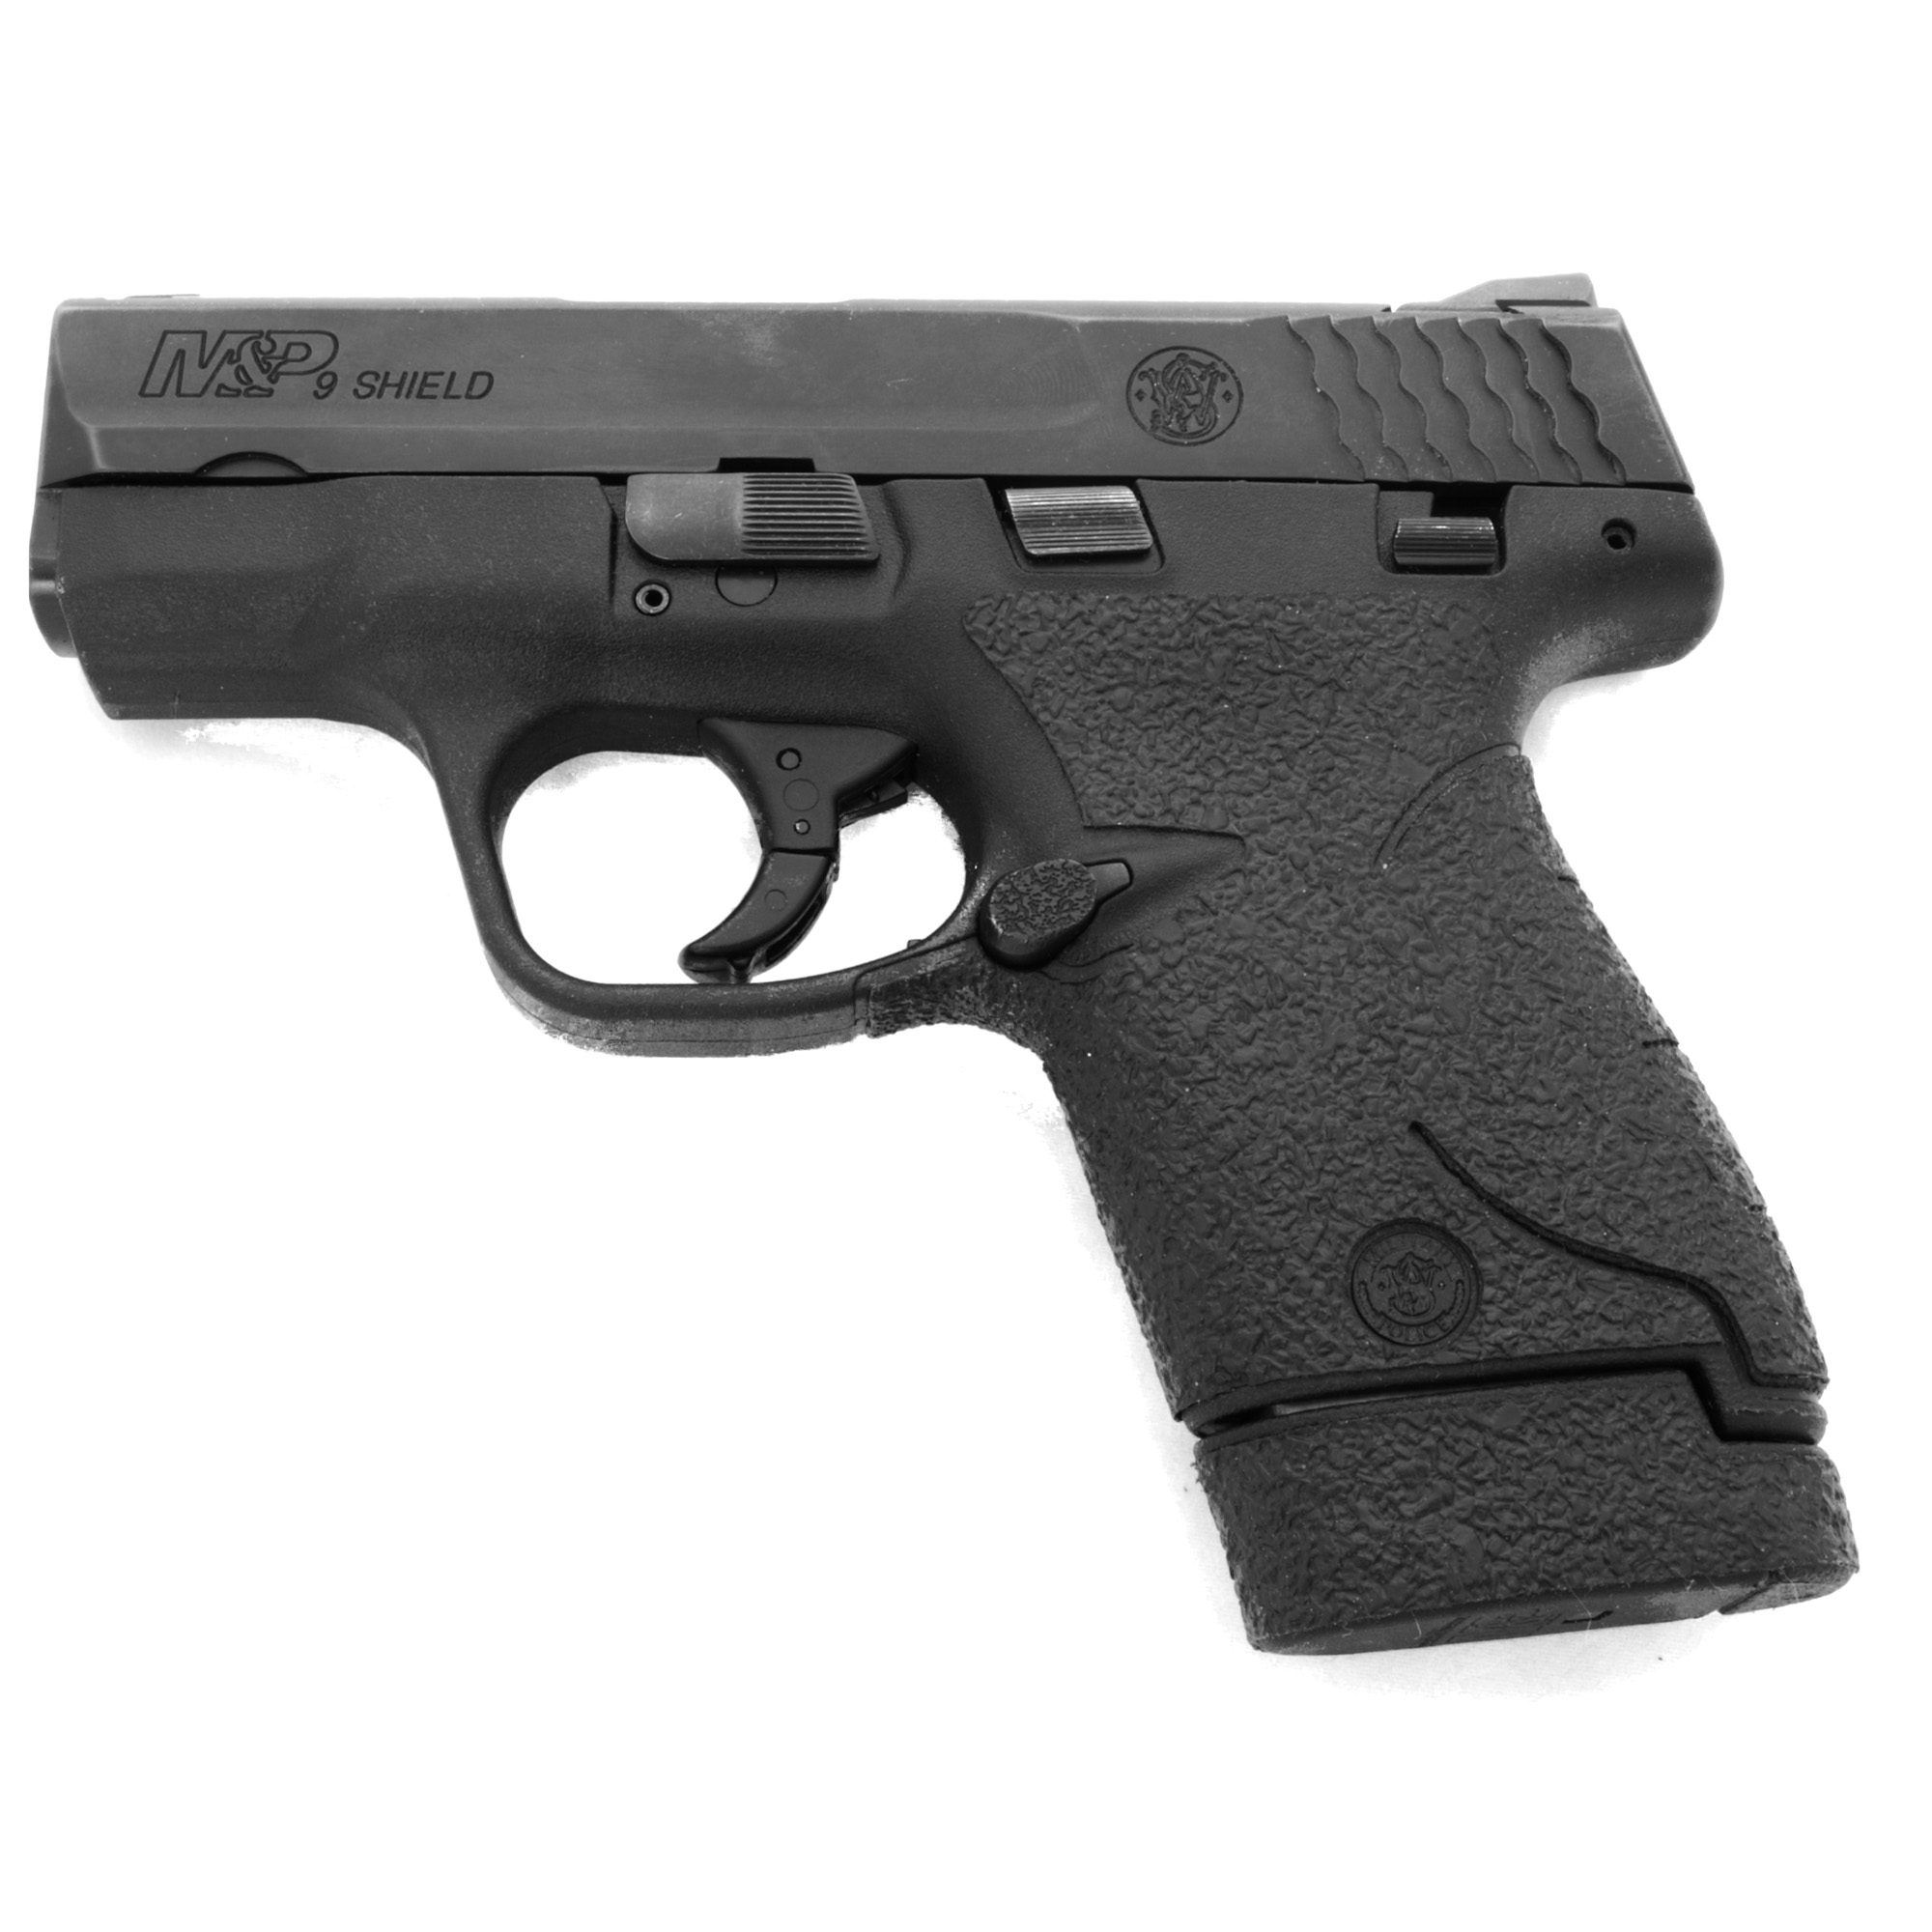 """TALON Grips for Smith & Wesson M&P Shield 9mm"""" .40 Cal. This Rear wrap grip is in the rubber texture and offers full side panel coverage including the thumb rest area"""" full front strap coverage"""" and full coverage on the backstrap. This grip has graphic cutouts for the M&P emblem on both sides of the firearm."""